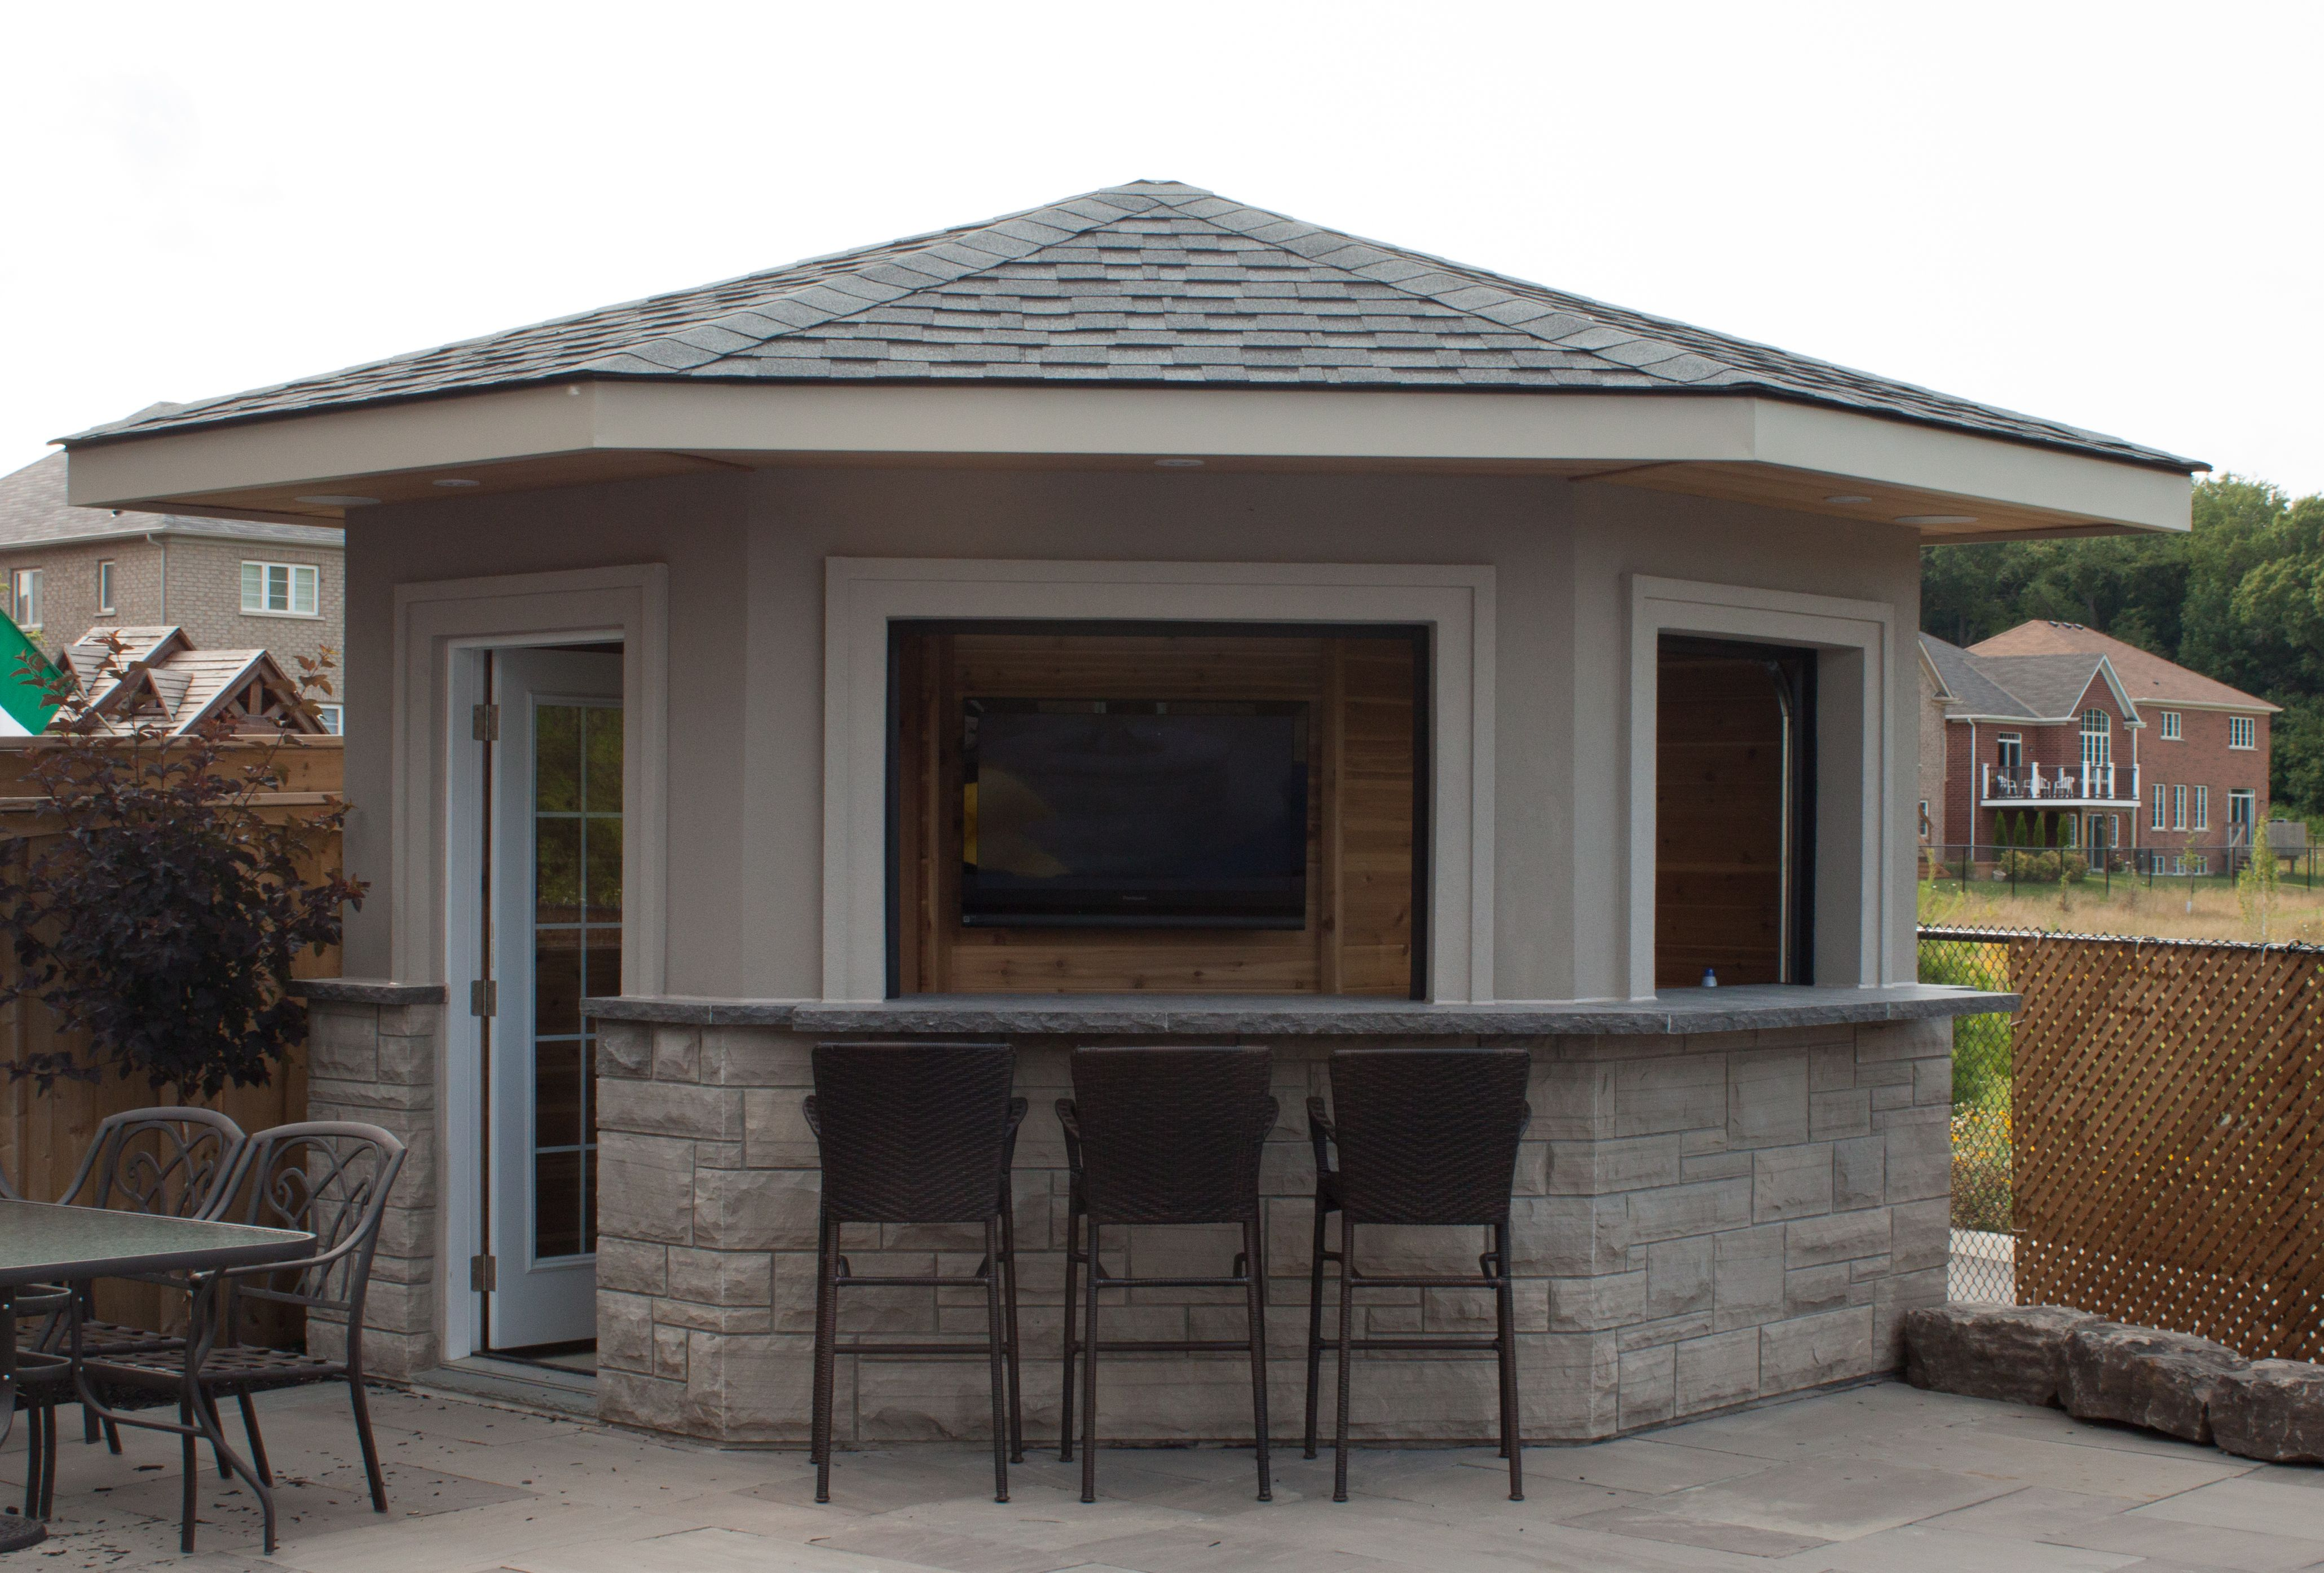 5 sided shed pool house cabana featuring stucco exterior for Pool house garage